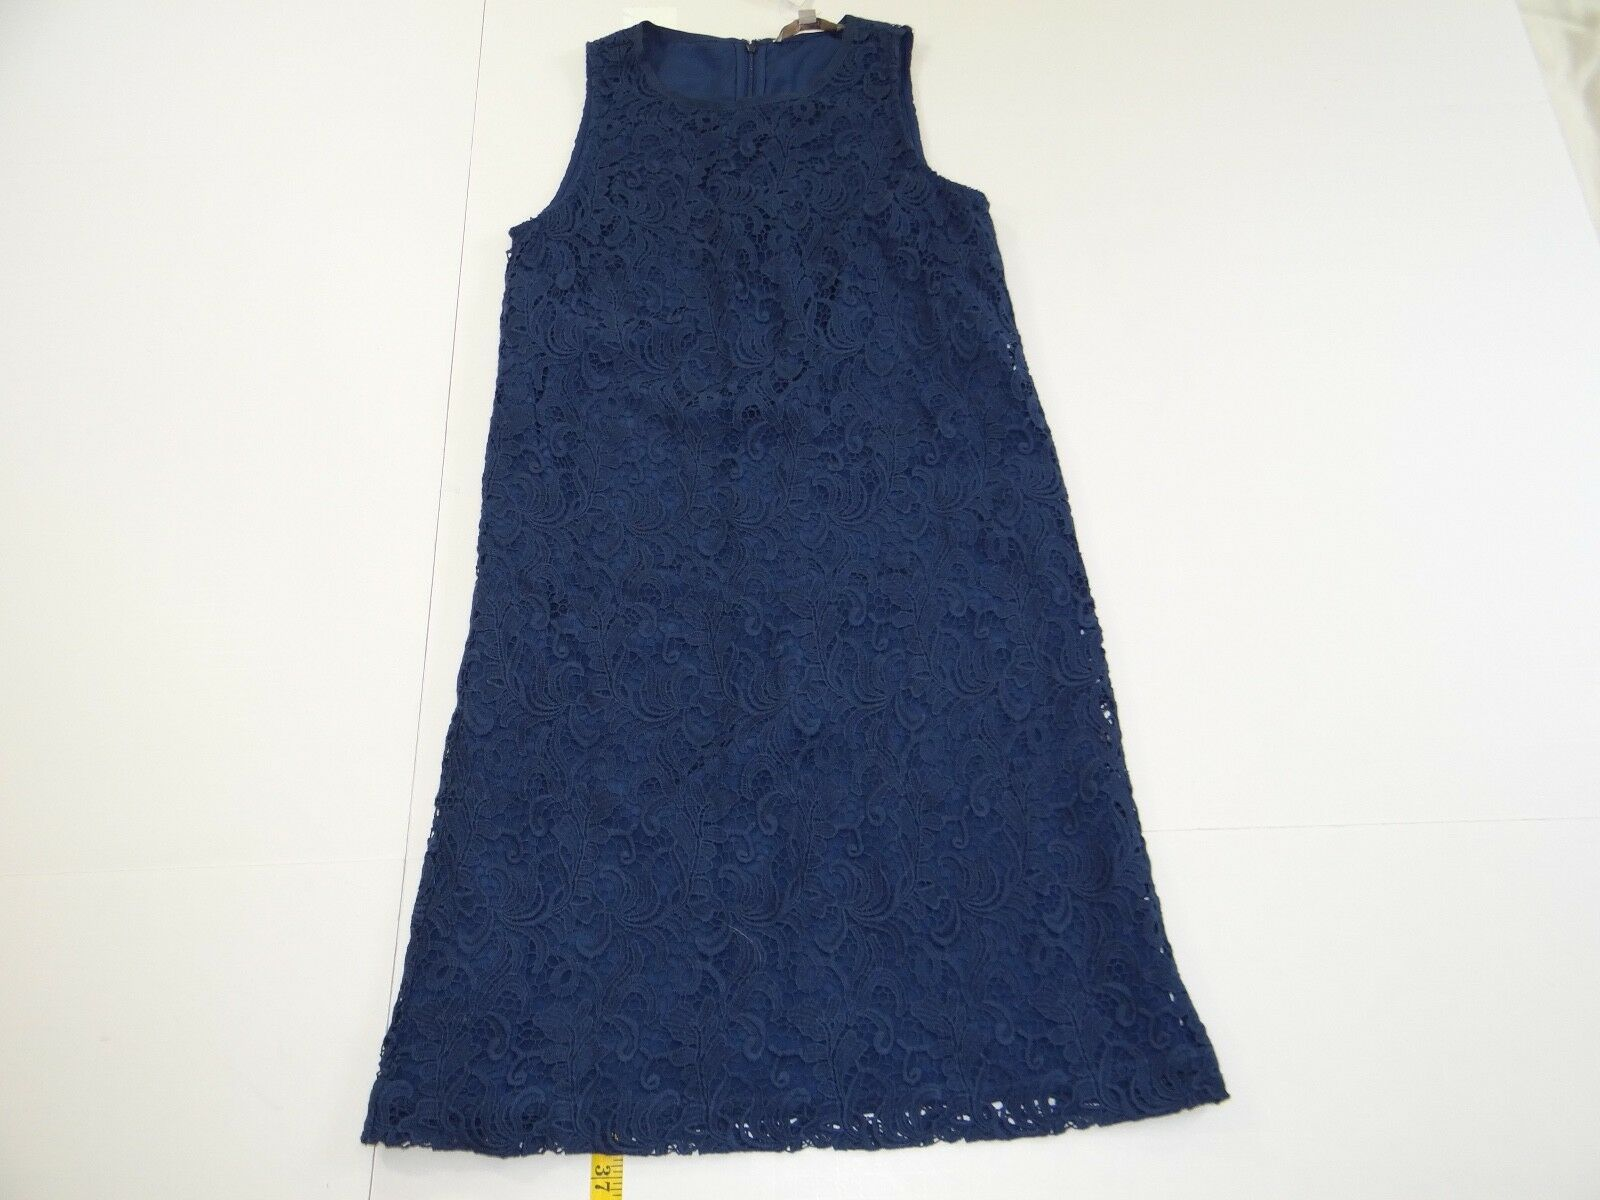 Ann Taylor LOFT Woherren Blau Sleeveless Lace Dress 4T 4 Tall NWT NEW